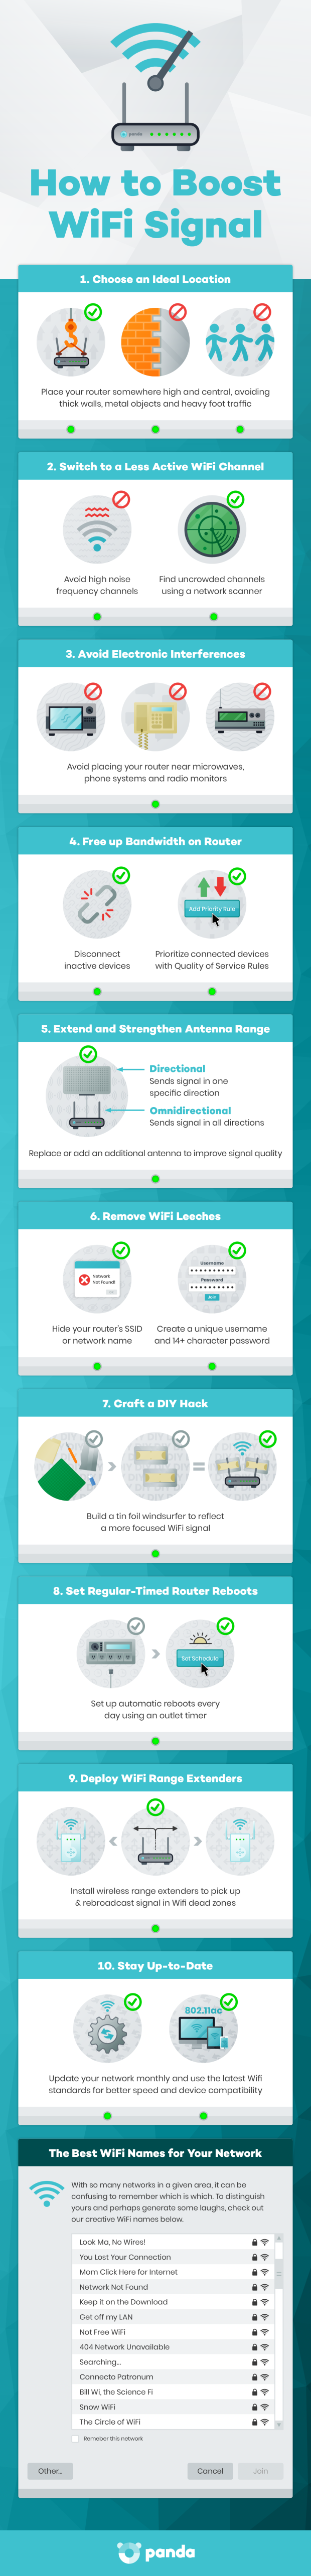 How-to-boost-wifi-signal